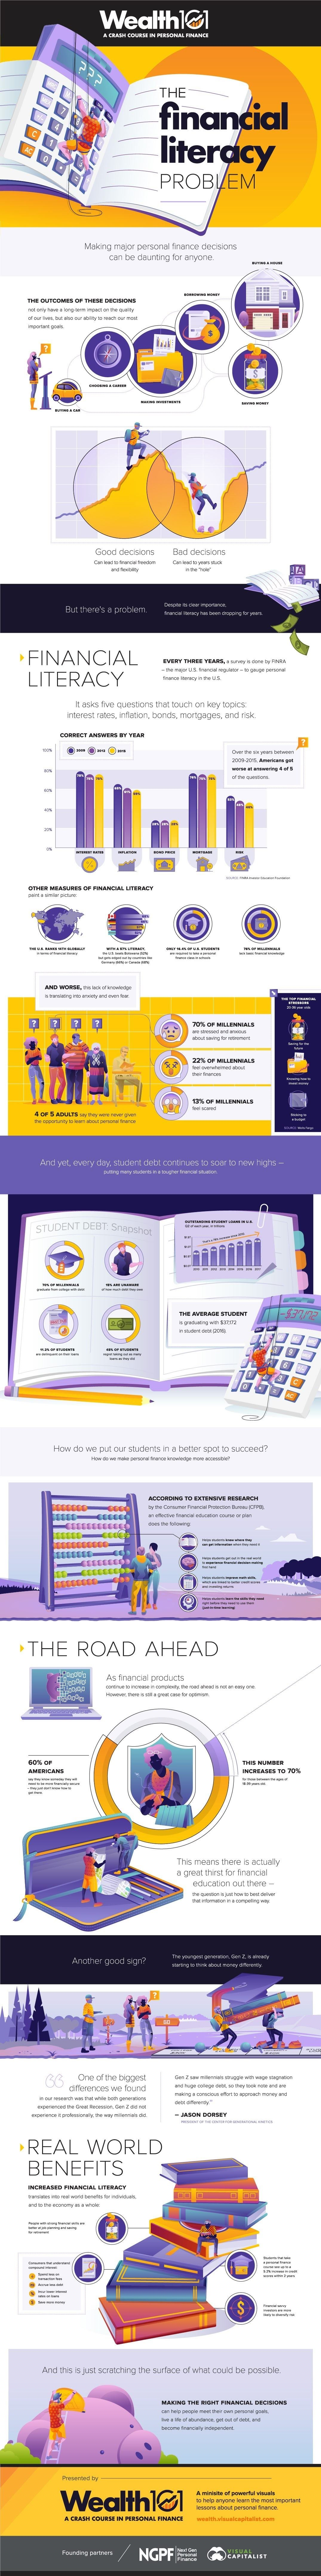 The Financial Literacy Problem #infographic